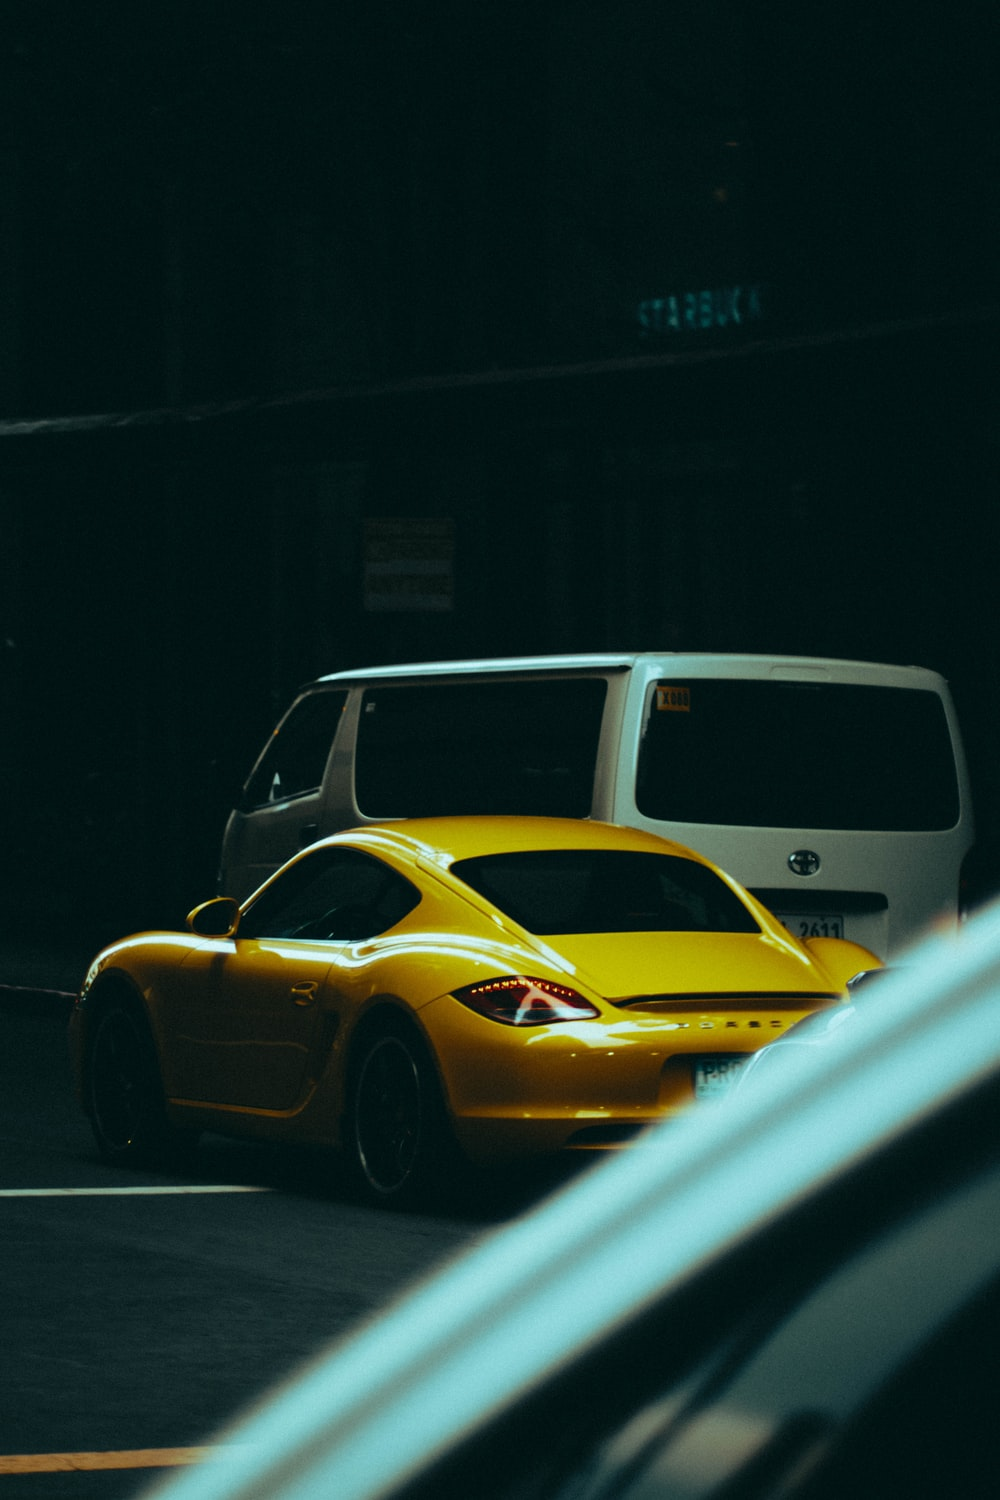 yellow and black classic car